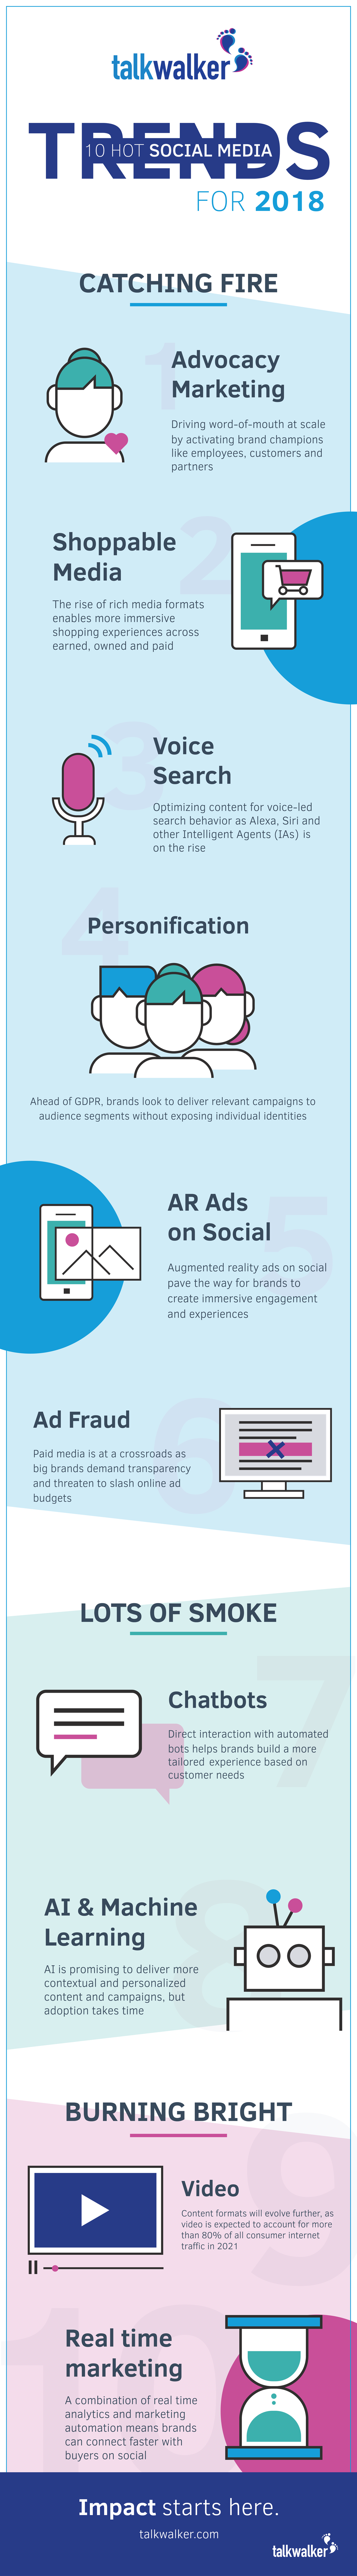 Social Media Trends Infographic 2018